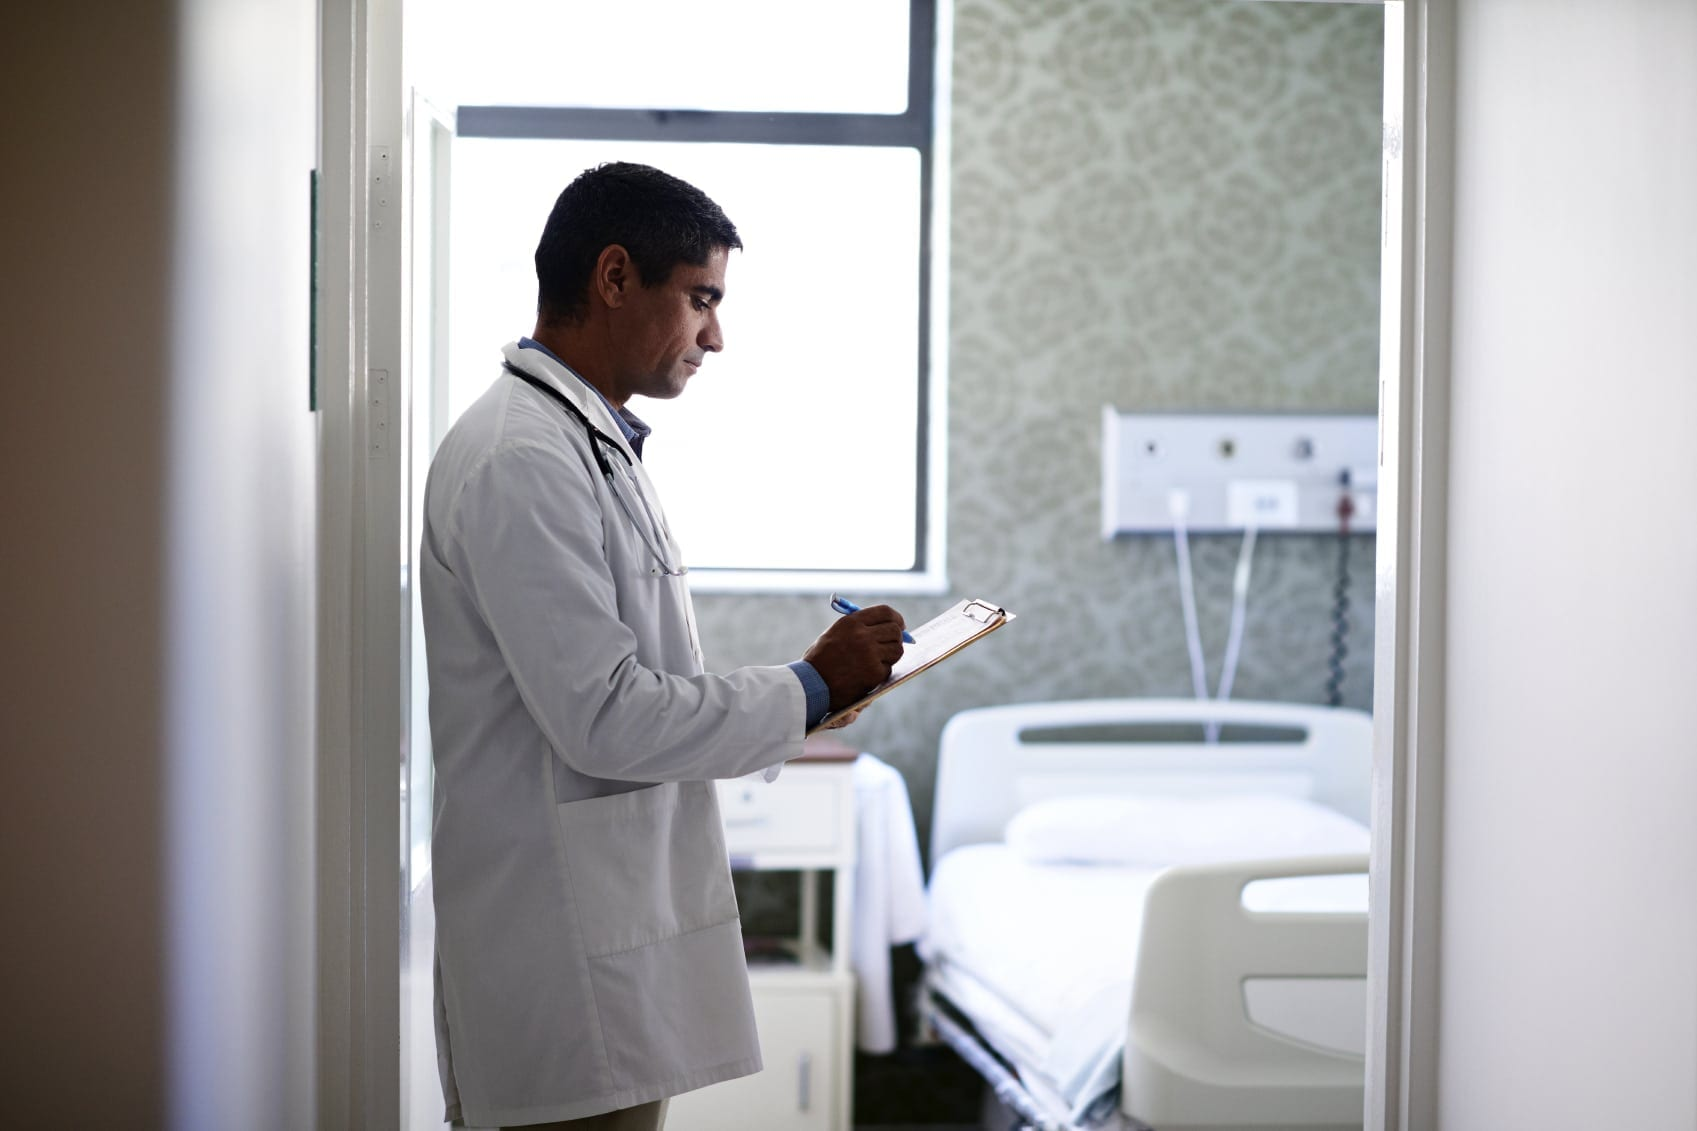 Male Doctor Completing Medical Forms In Hospital Room Stock Photo